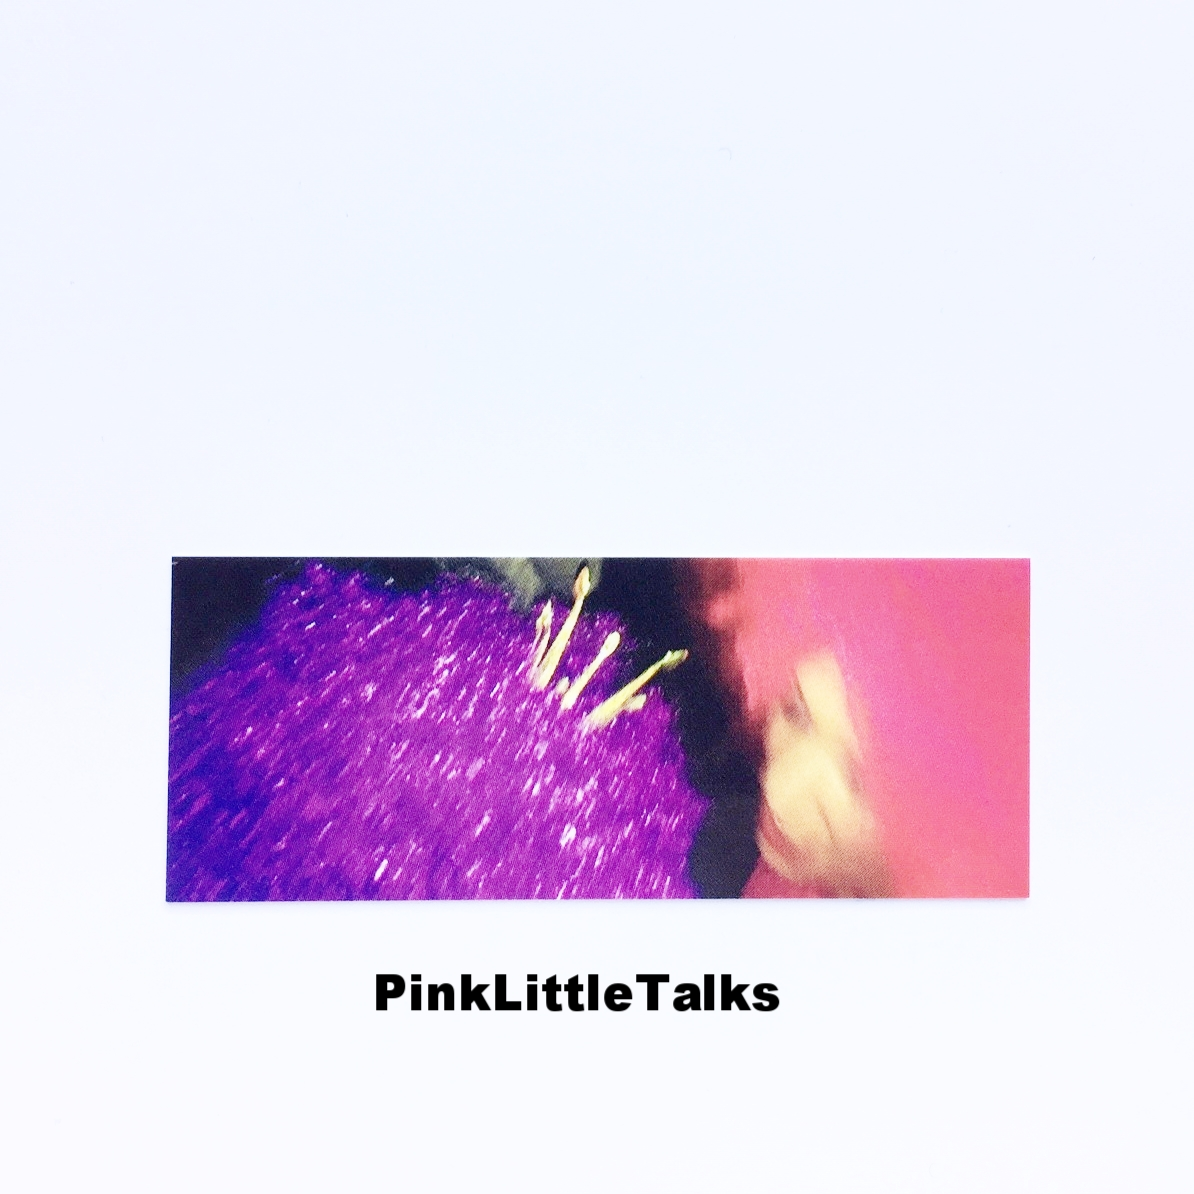 PinkLittleTalks.JPG